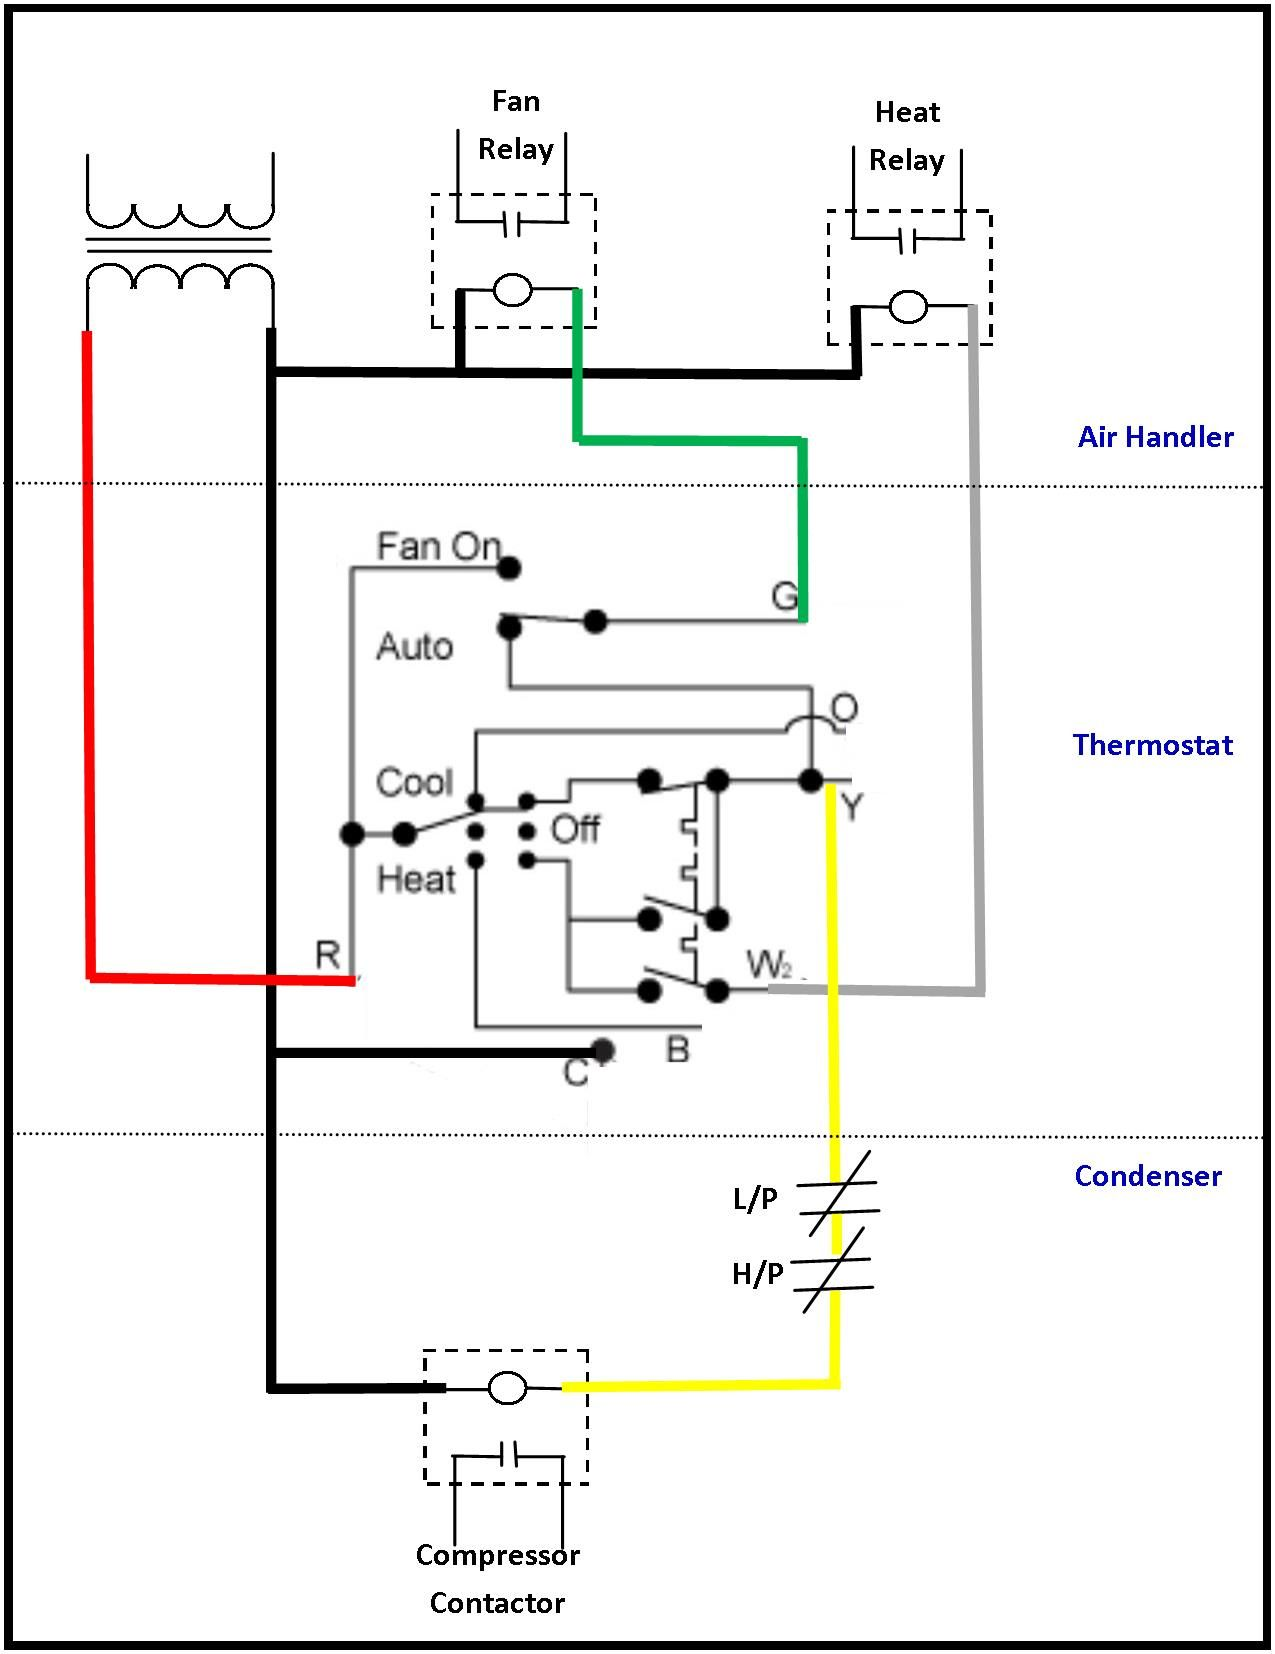 24 Volt Transformer Wiring Diagram | Thermostat wiring, Electrical circuit  diagram, Electrical wiring diagram | Hvac Contactor Wiring Schematic |  | Pinterest